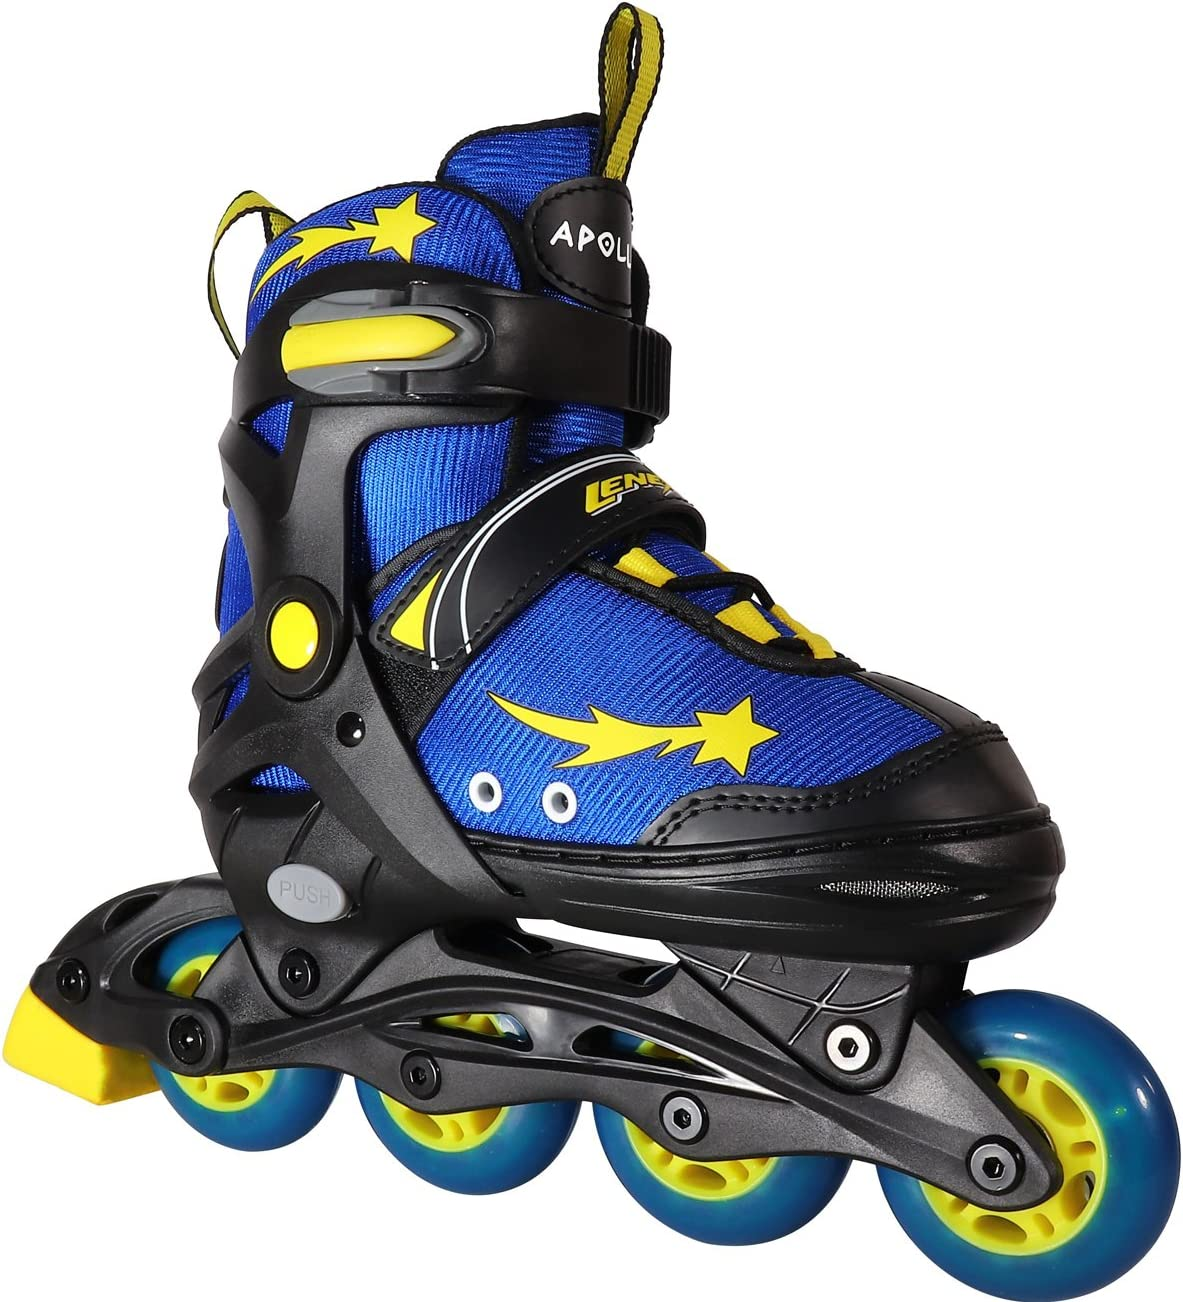 Lenexa Apollo Kids Roller Skate Blades – Patines Roller Skate Blades for a Kid Girl Girls, Boy Boys – Adjustable Comfortable Inline Skates for Children Blue Yellow Black